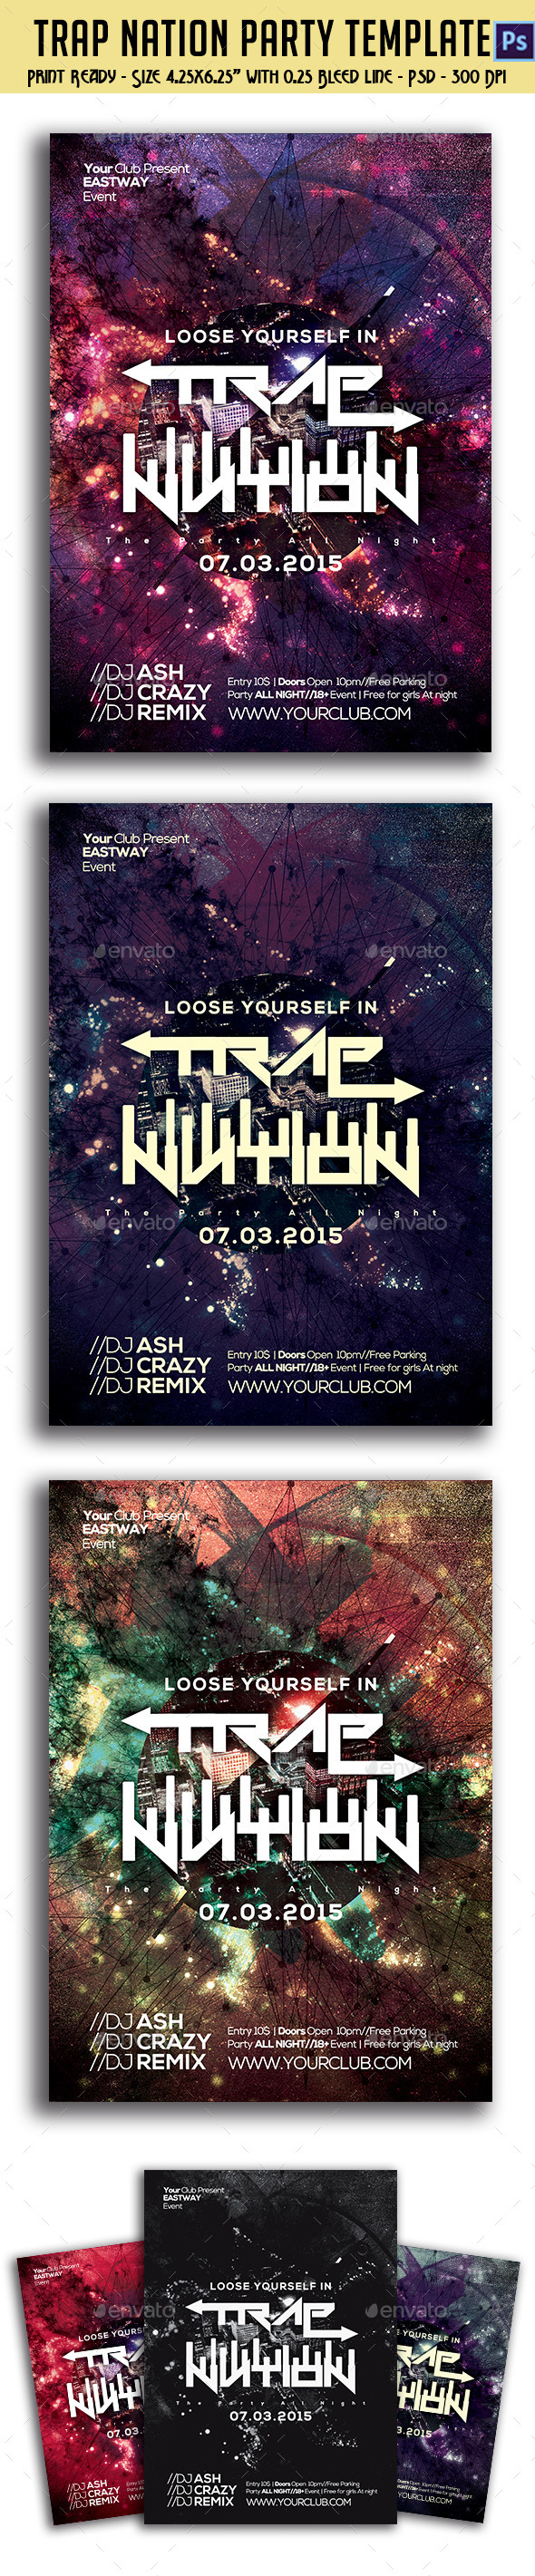 Trap Nation Party Flyer - Clubs & Parties Events